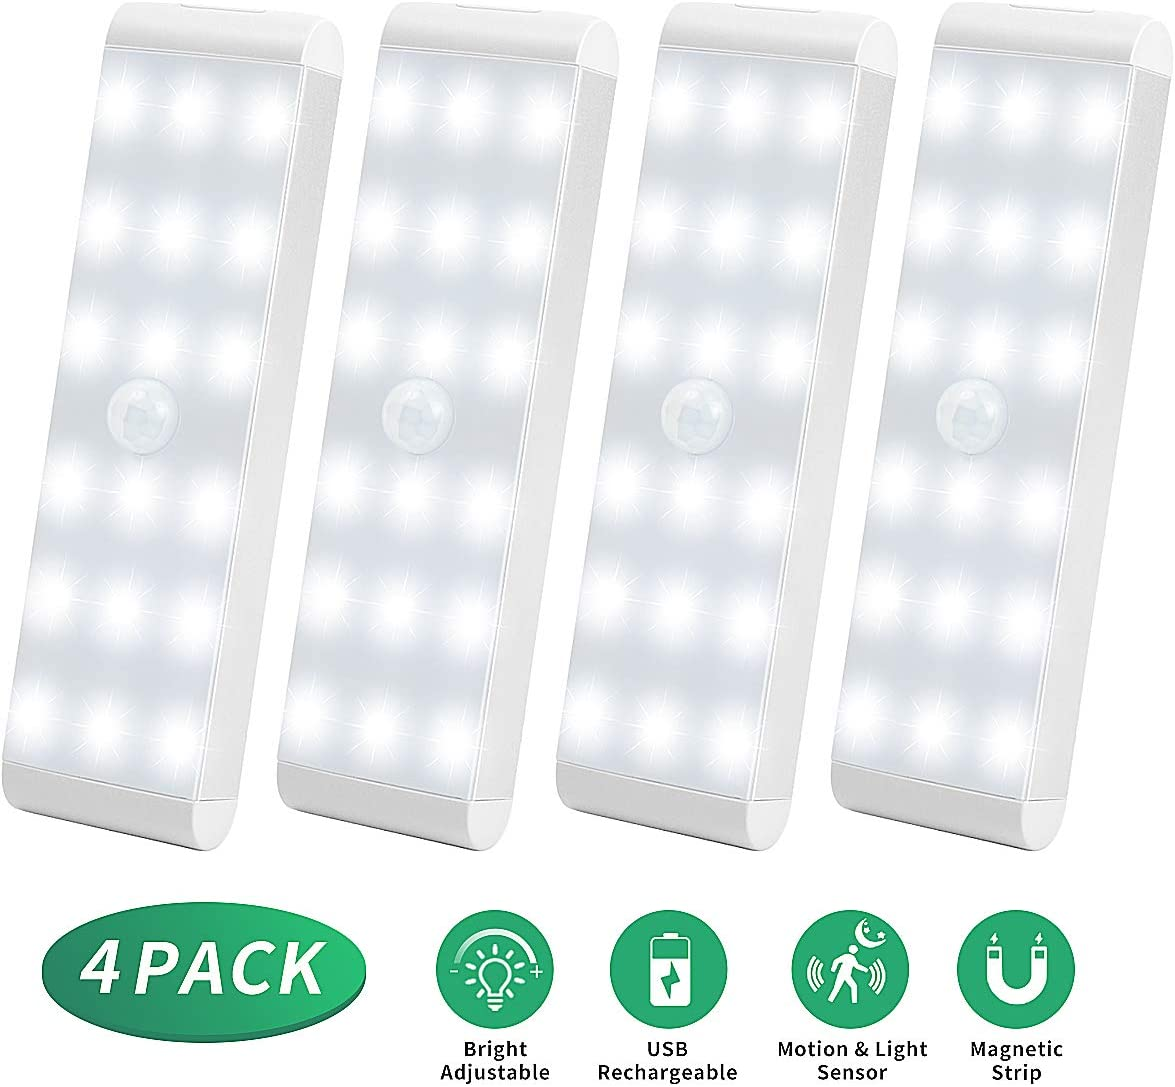 LED Closet Light,18-LED Dimmer USB Rechargeable Motion Sensor Closet Light Under Cabinet Wireless Stick-Anywhere Night Light Bar with 600mAh Battery for Stairs,Wardrobe,Kitchen,Hallway (4 Packs)